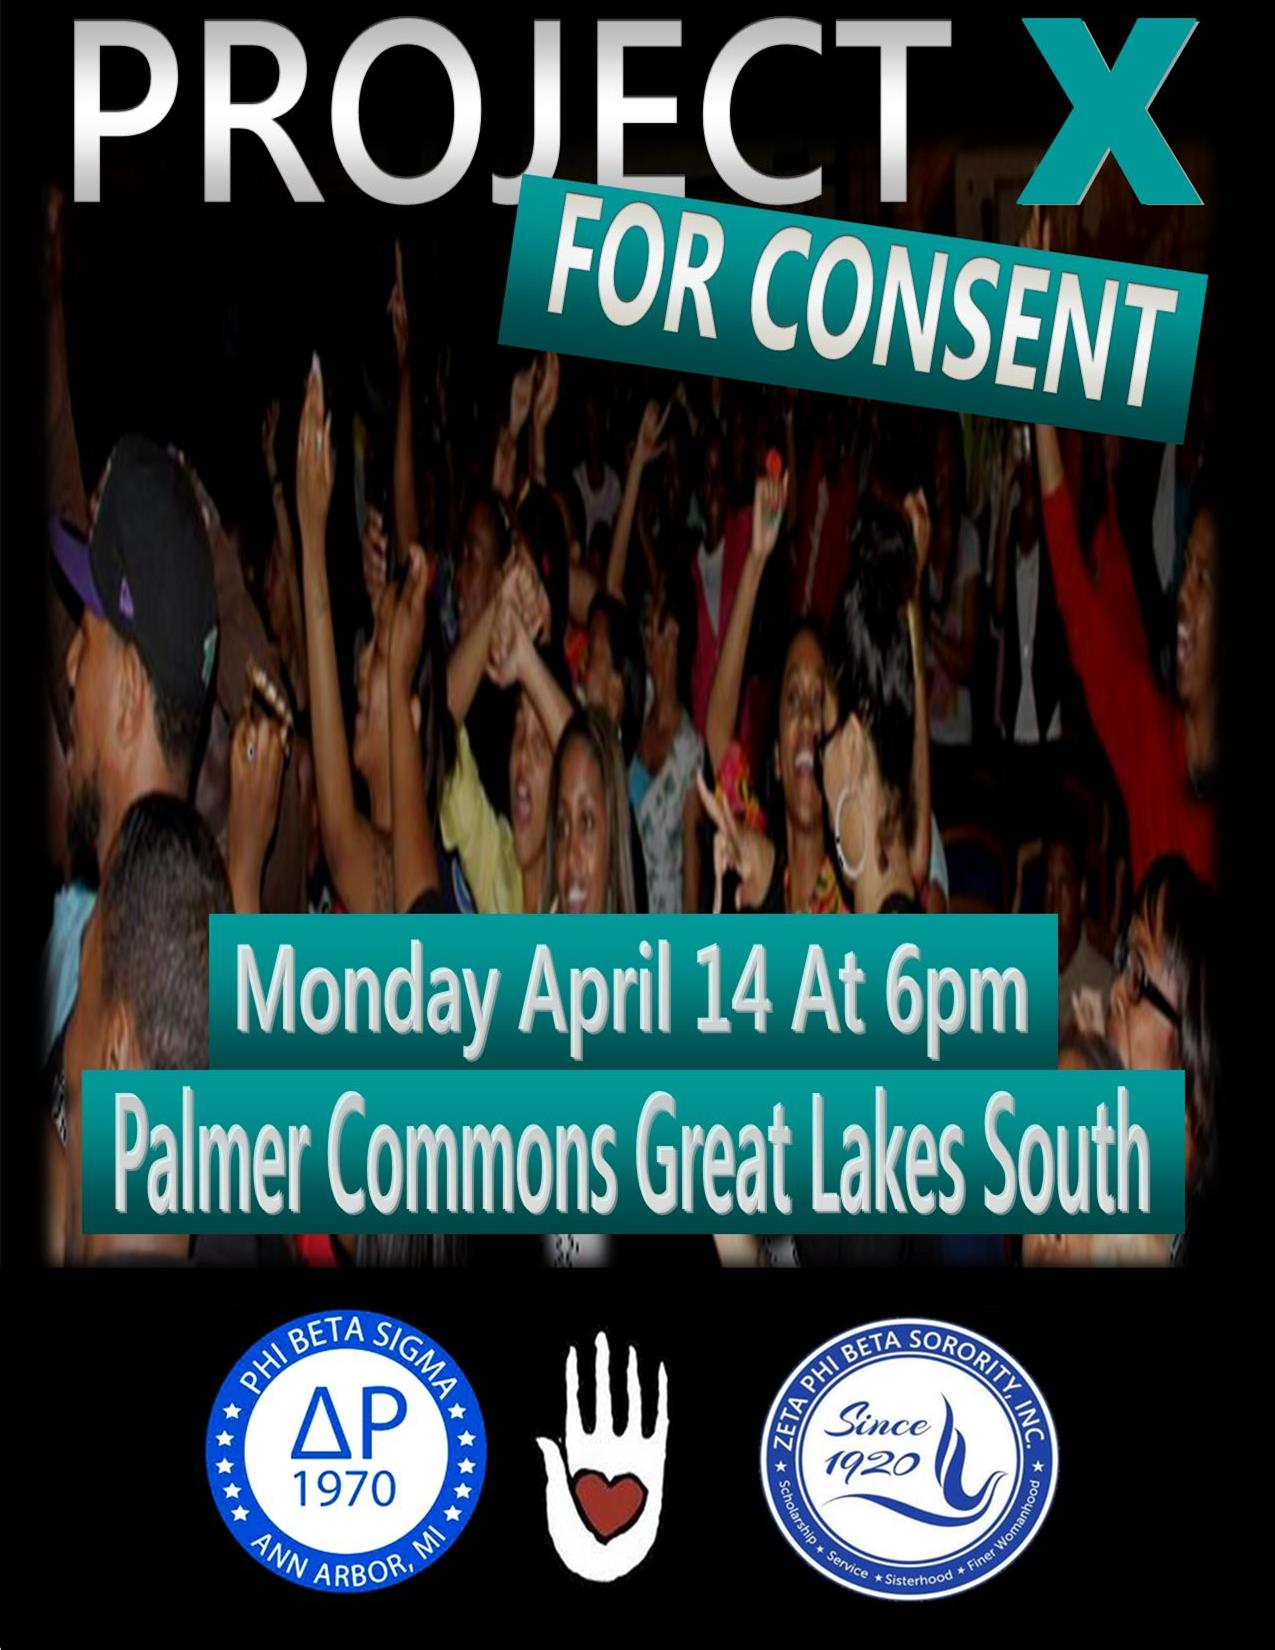 Men's Activism Project X for Consent Event Poster